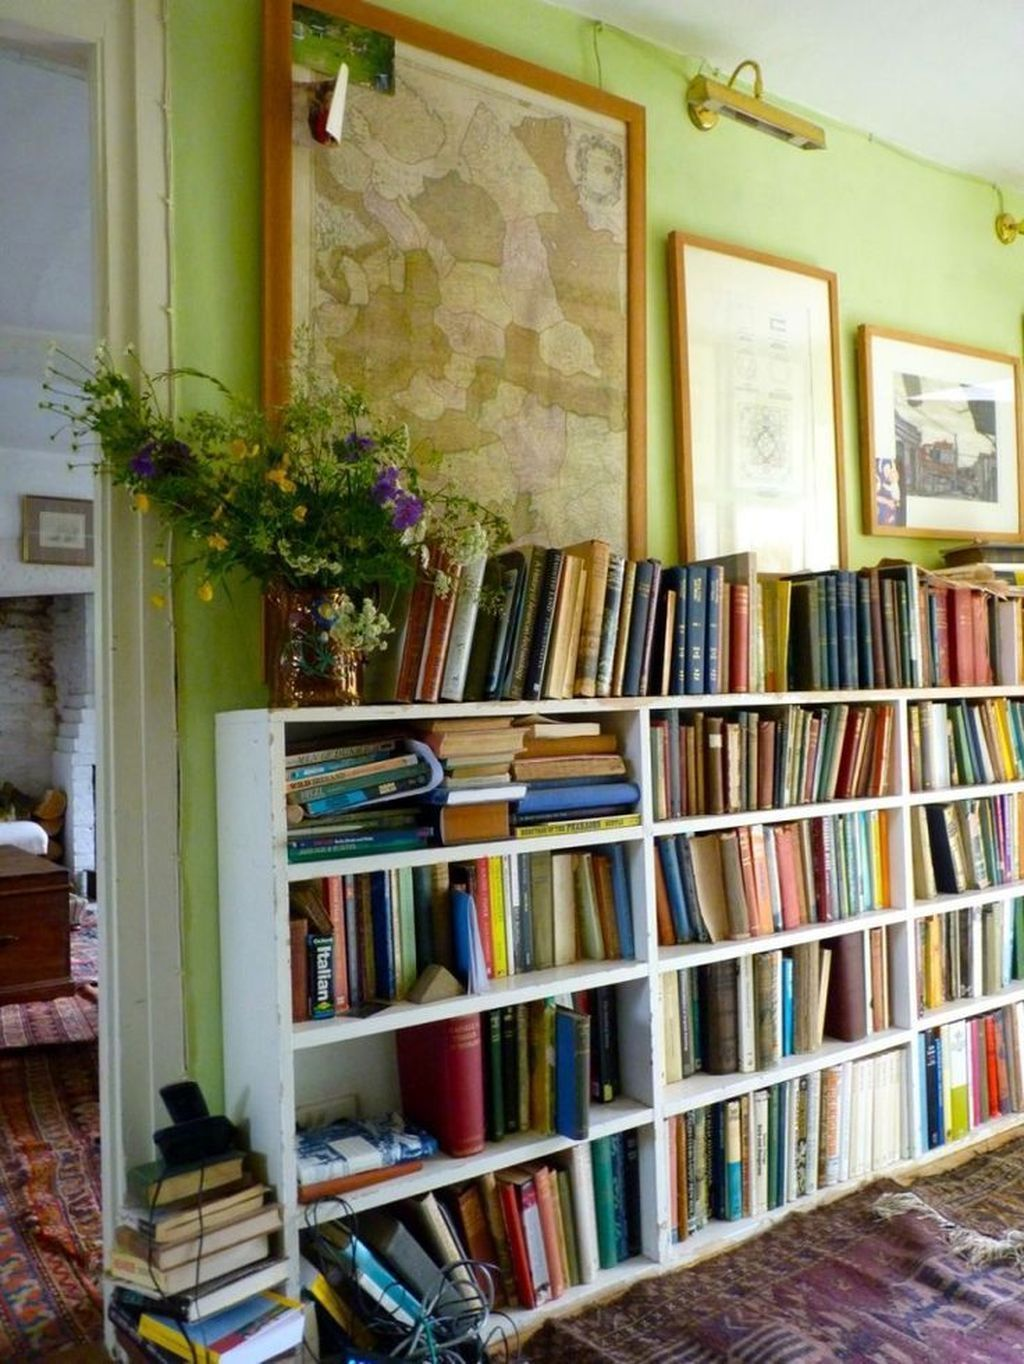 Library Room Ideas For Small Spaces: Stunning Home Library Ideas